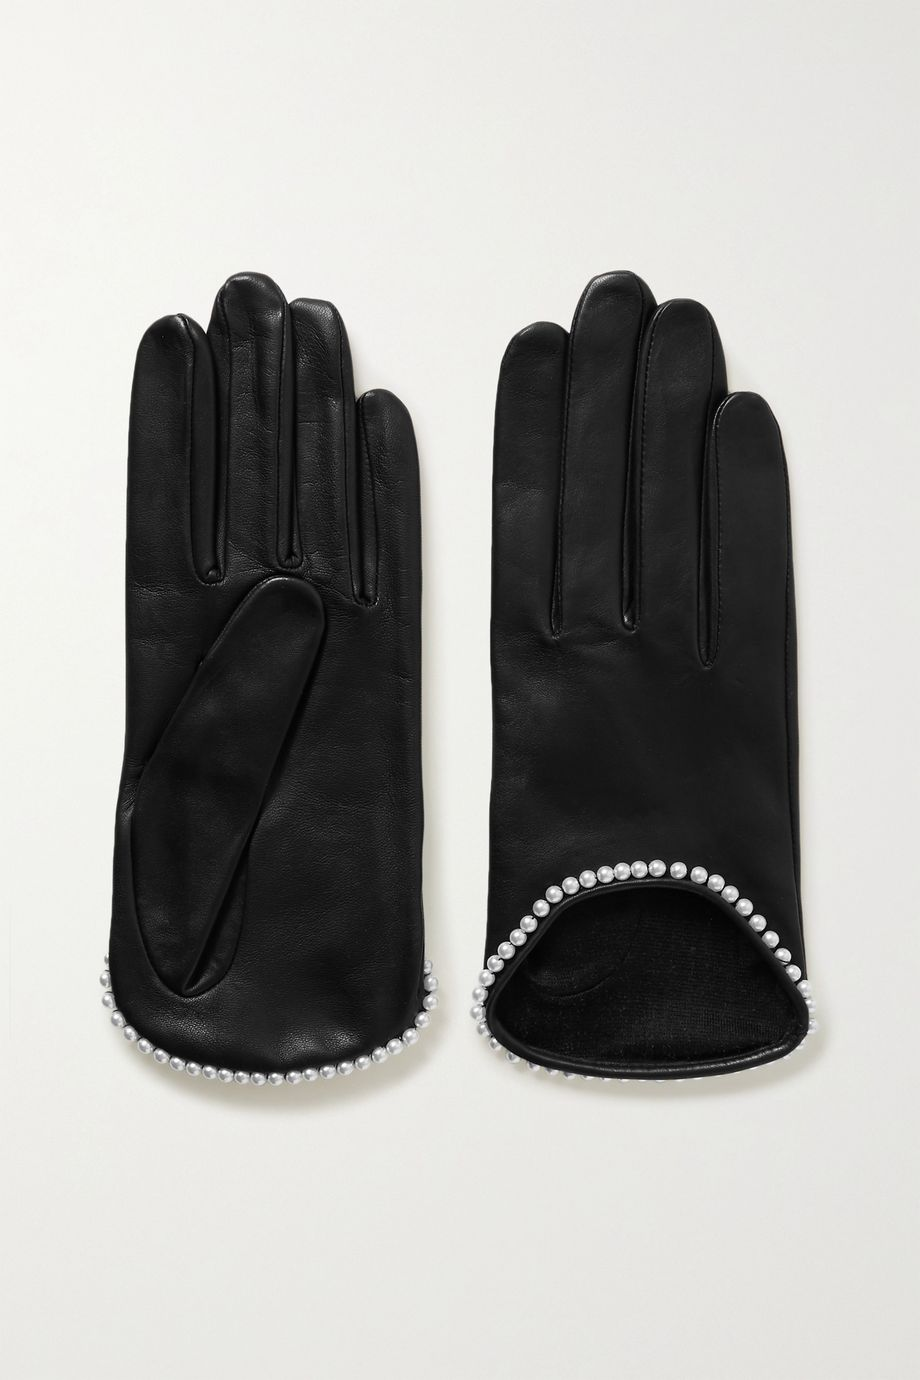 Agnelle Sofia faux pearl-embellished leather gloves